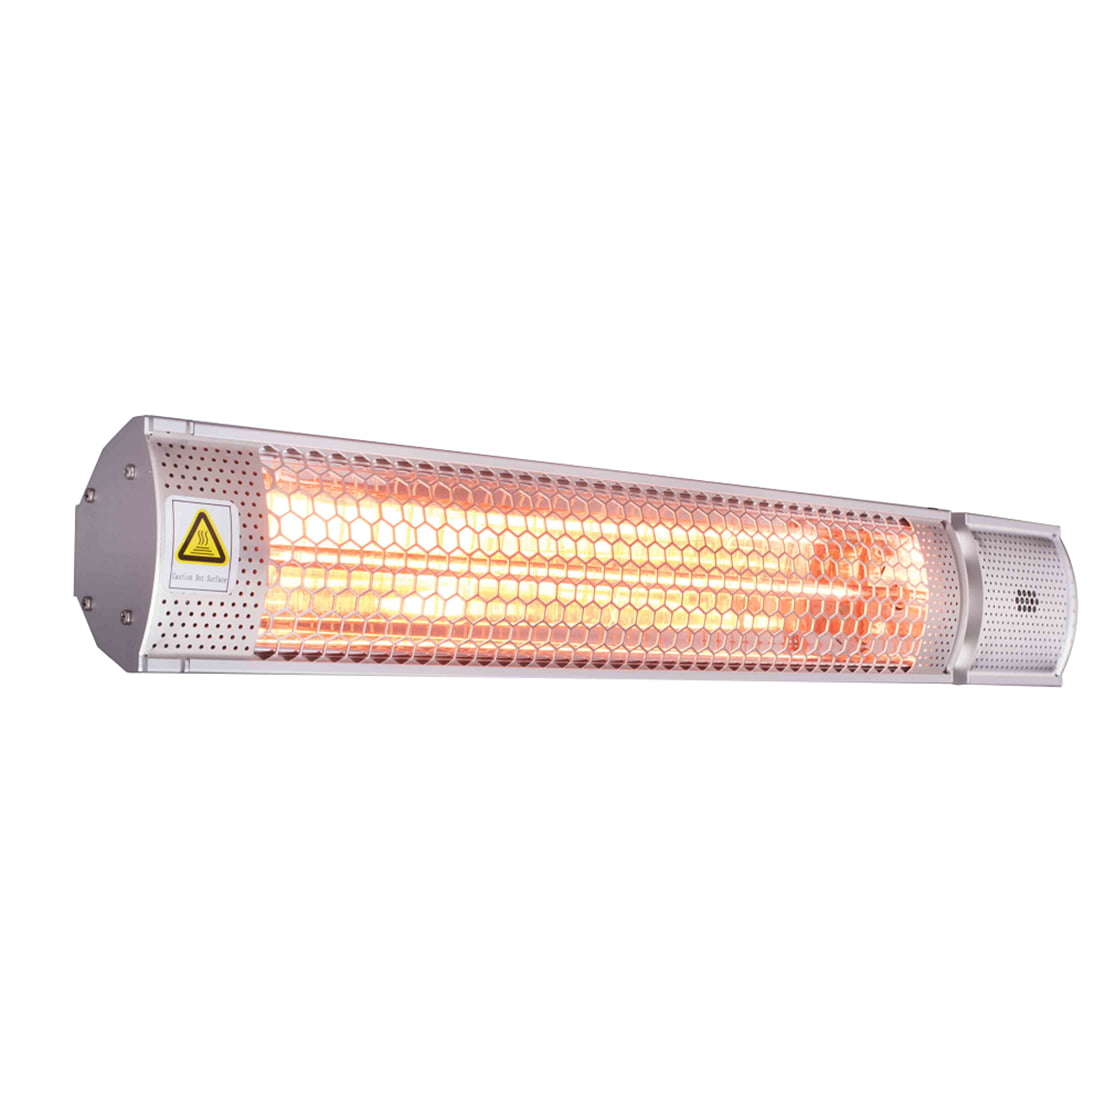 Decorative Infrared Wall Heaters